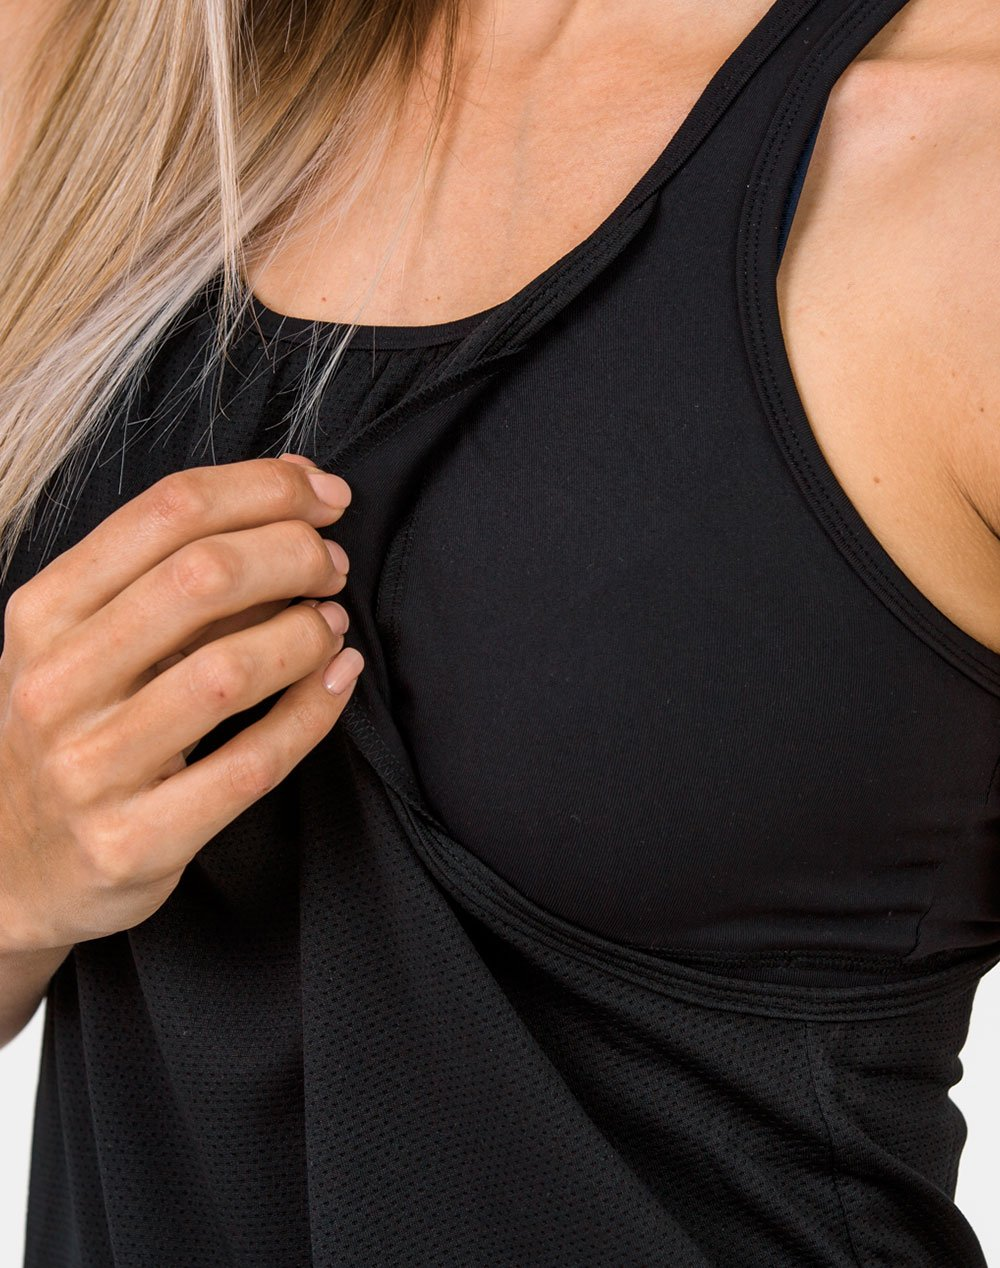 mom in a black breastfeeding top close up with the armhole pulled open to breastfeed